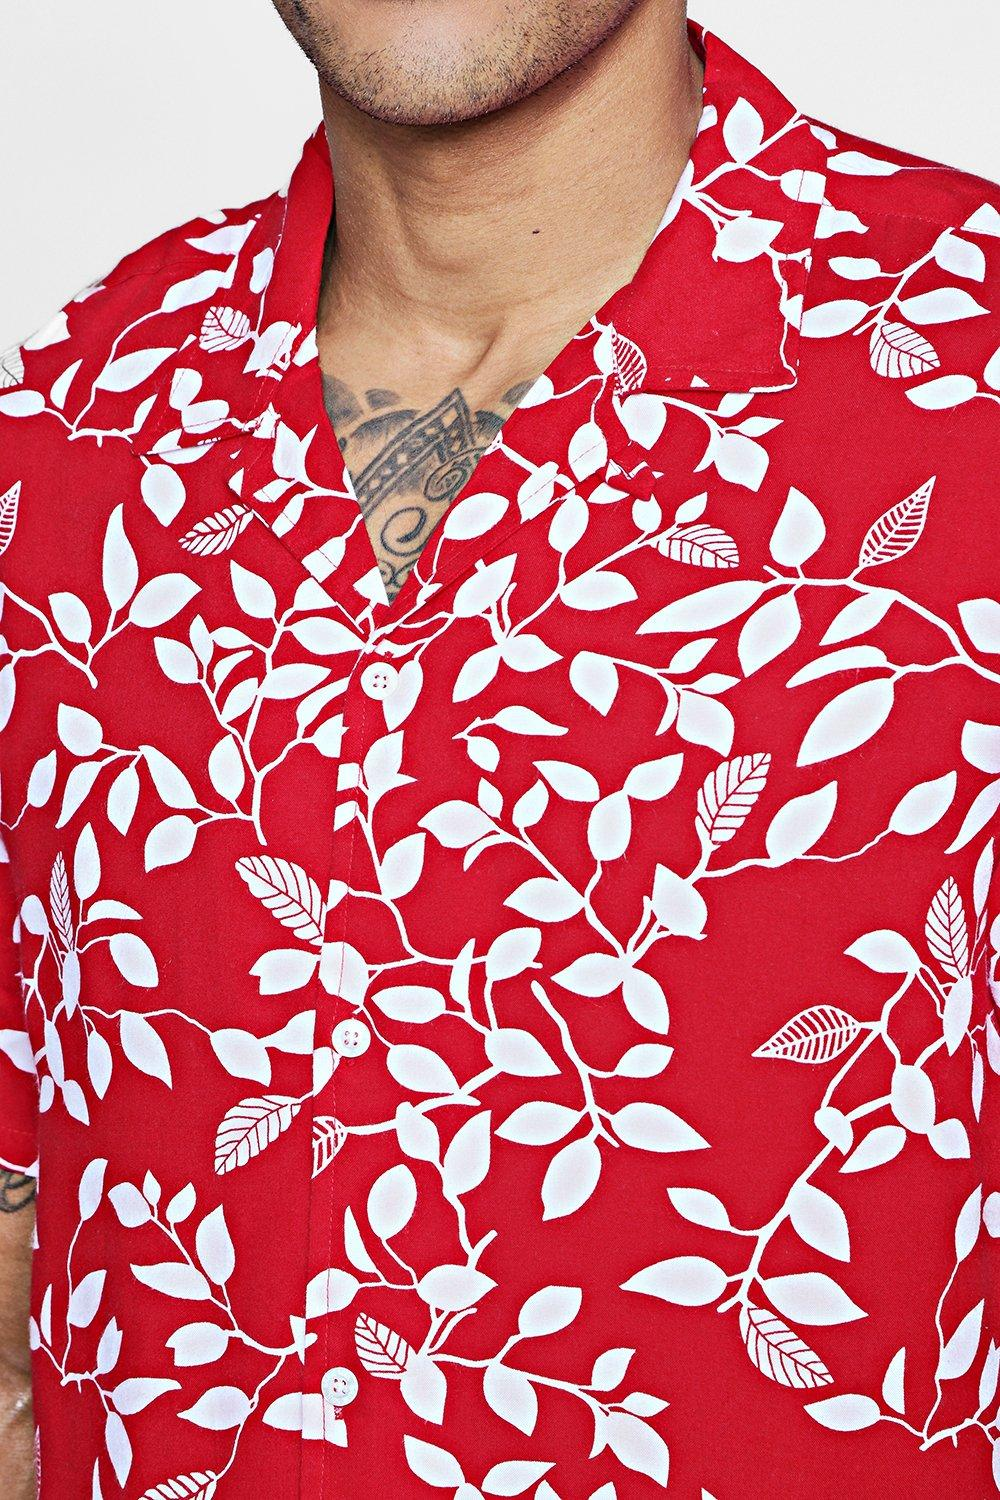 FLORAL SUBLIMATION TRUCKER SHIRT